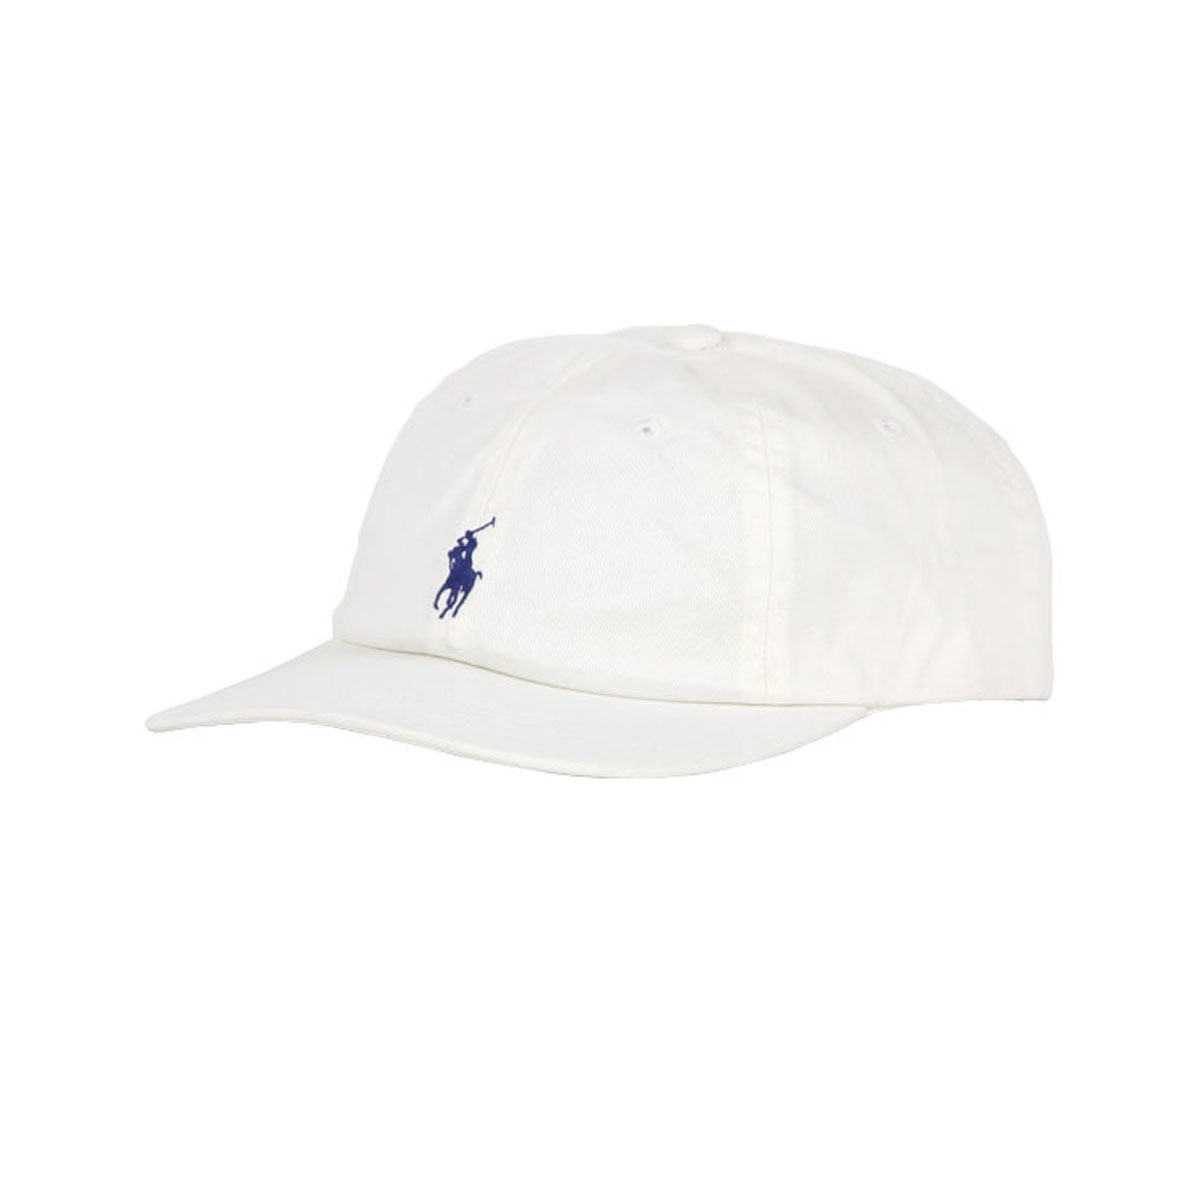 19b1078fb8e Polo Ralph Lauren POLO RALPH LAUREN genuine men s hats Cap COTTON CHINO BASEBALL  CAP